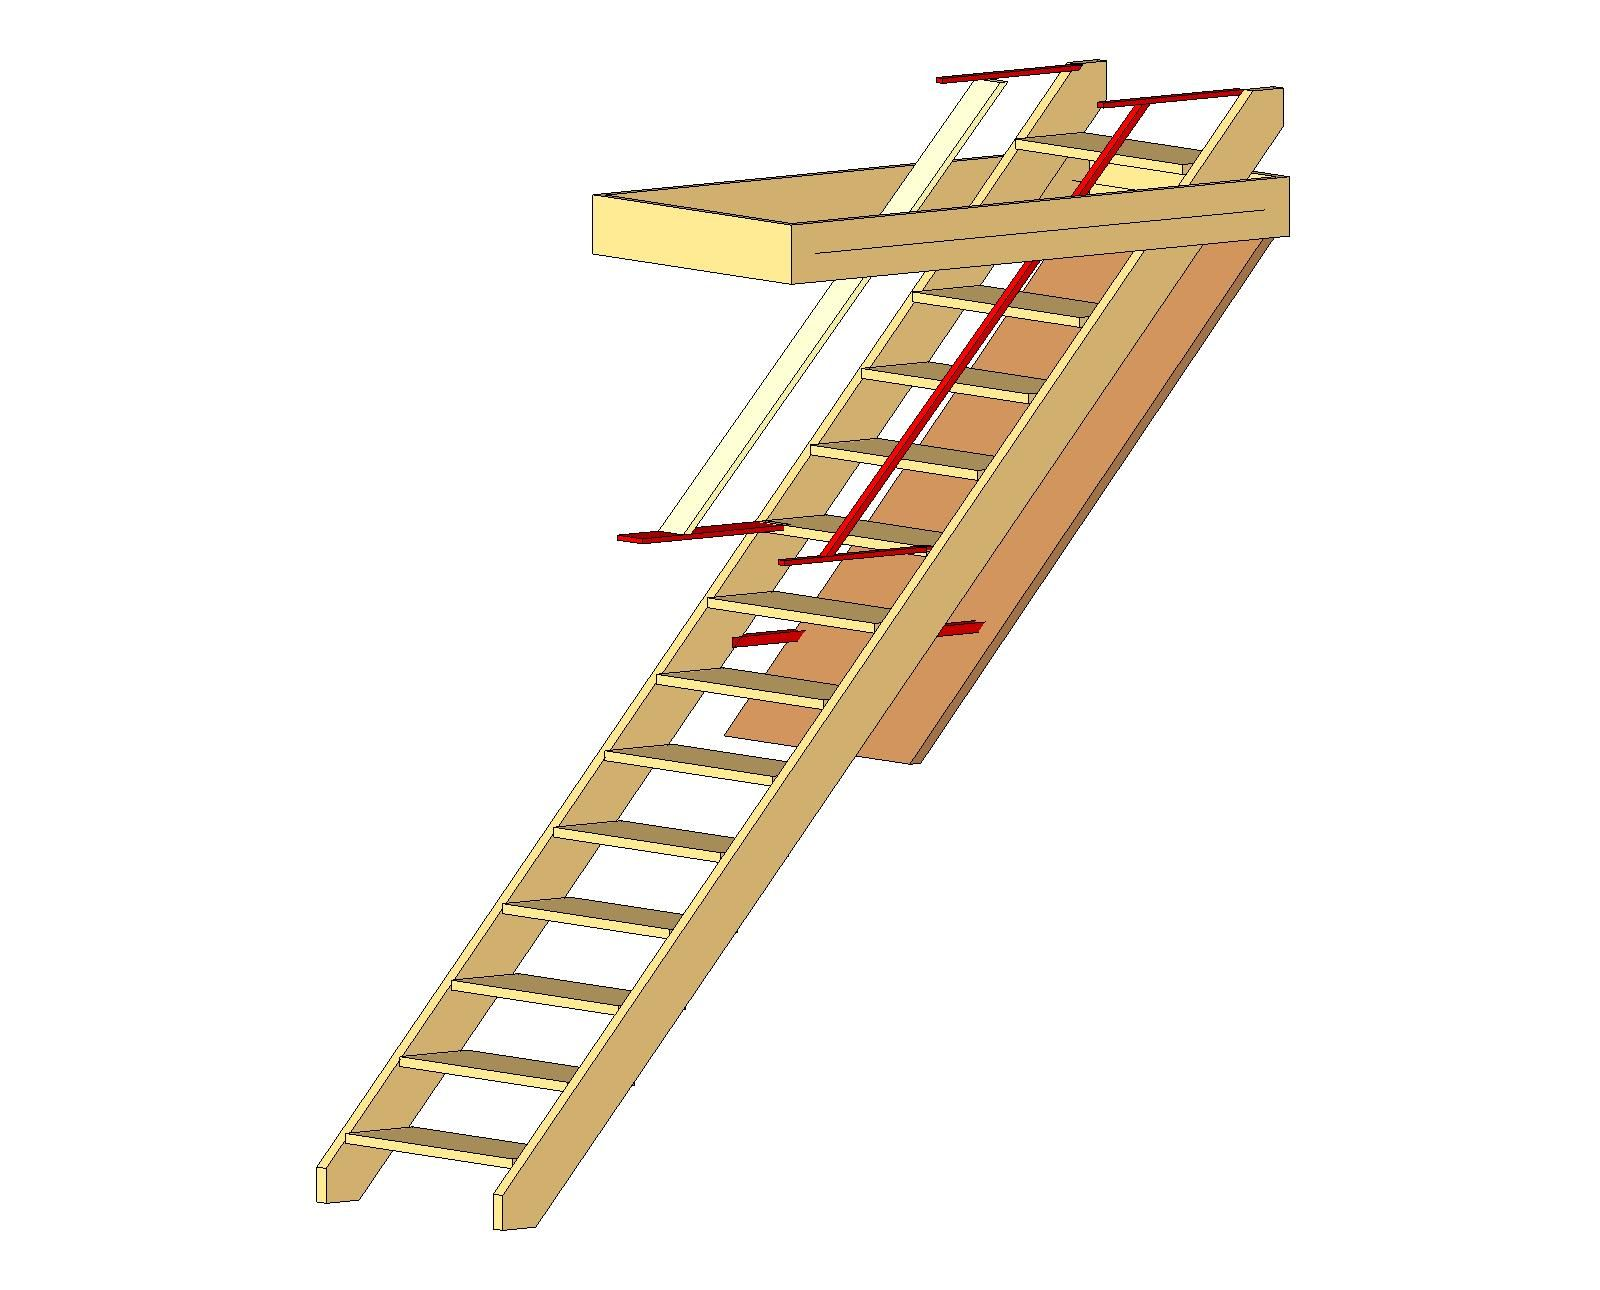 How To Build An Attic Access Ladder Attic Access Ladder Attic Flooring Attic Rooms